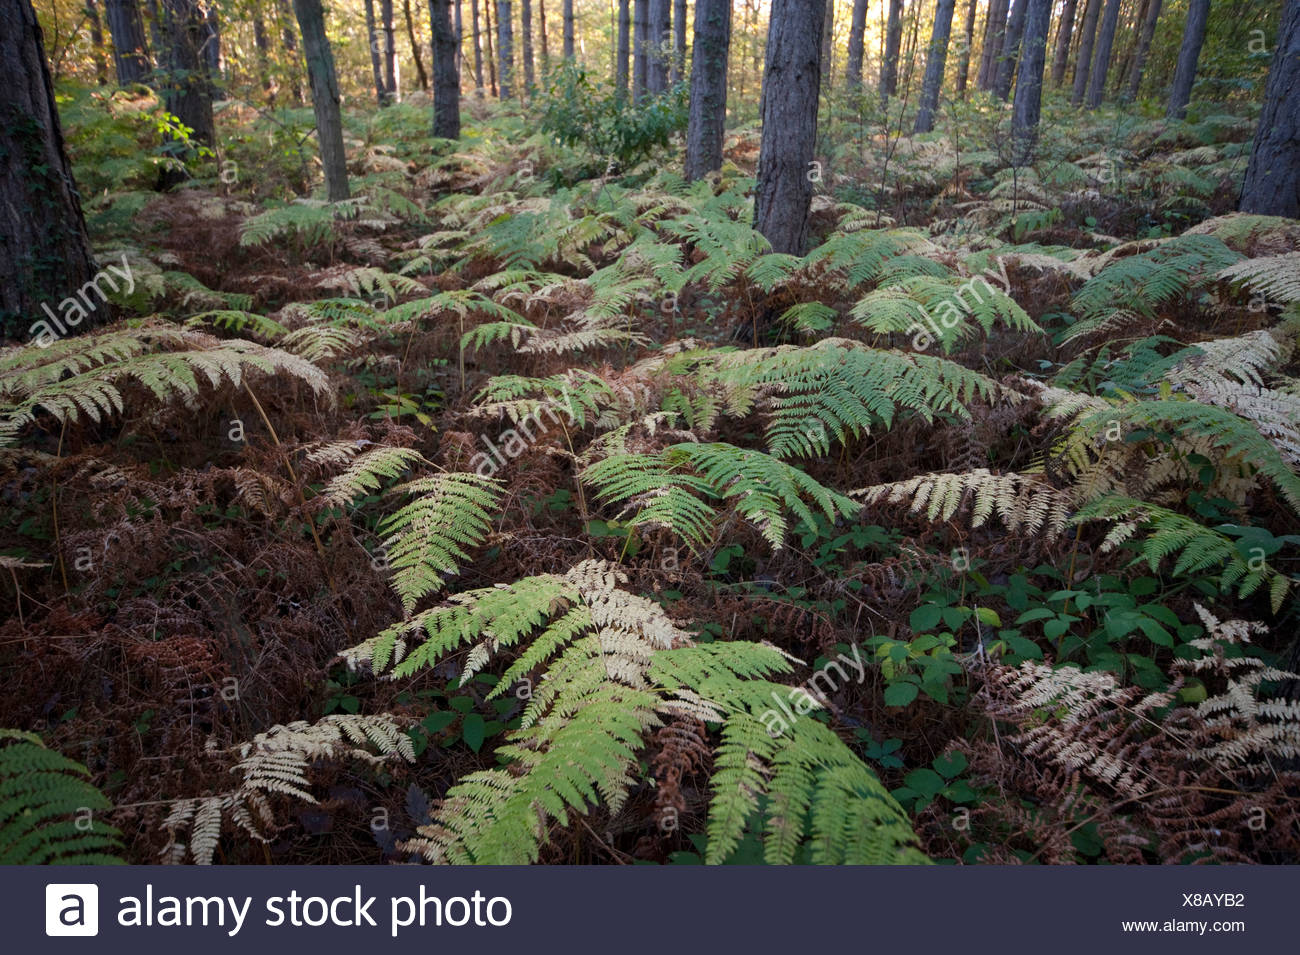 Broad Buckler FernThornden Woodlands Kent UK Stock Photo